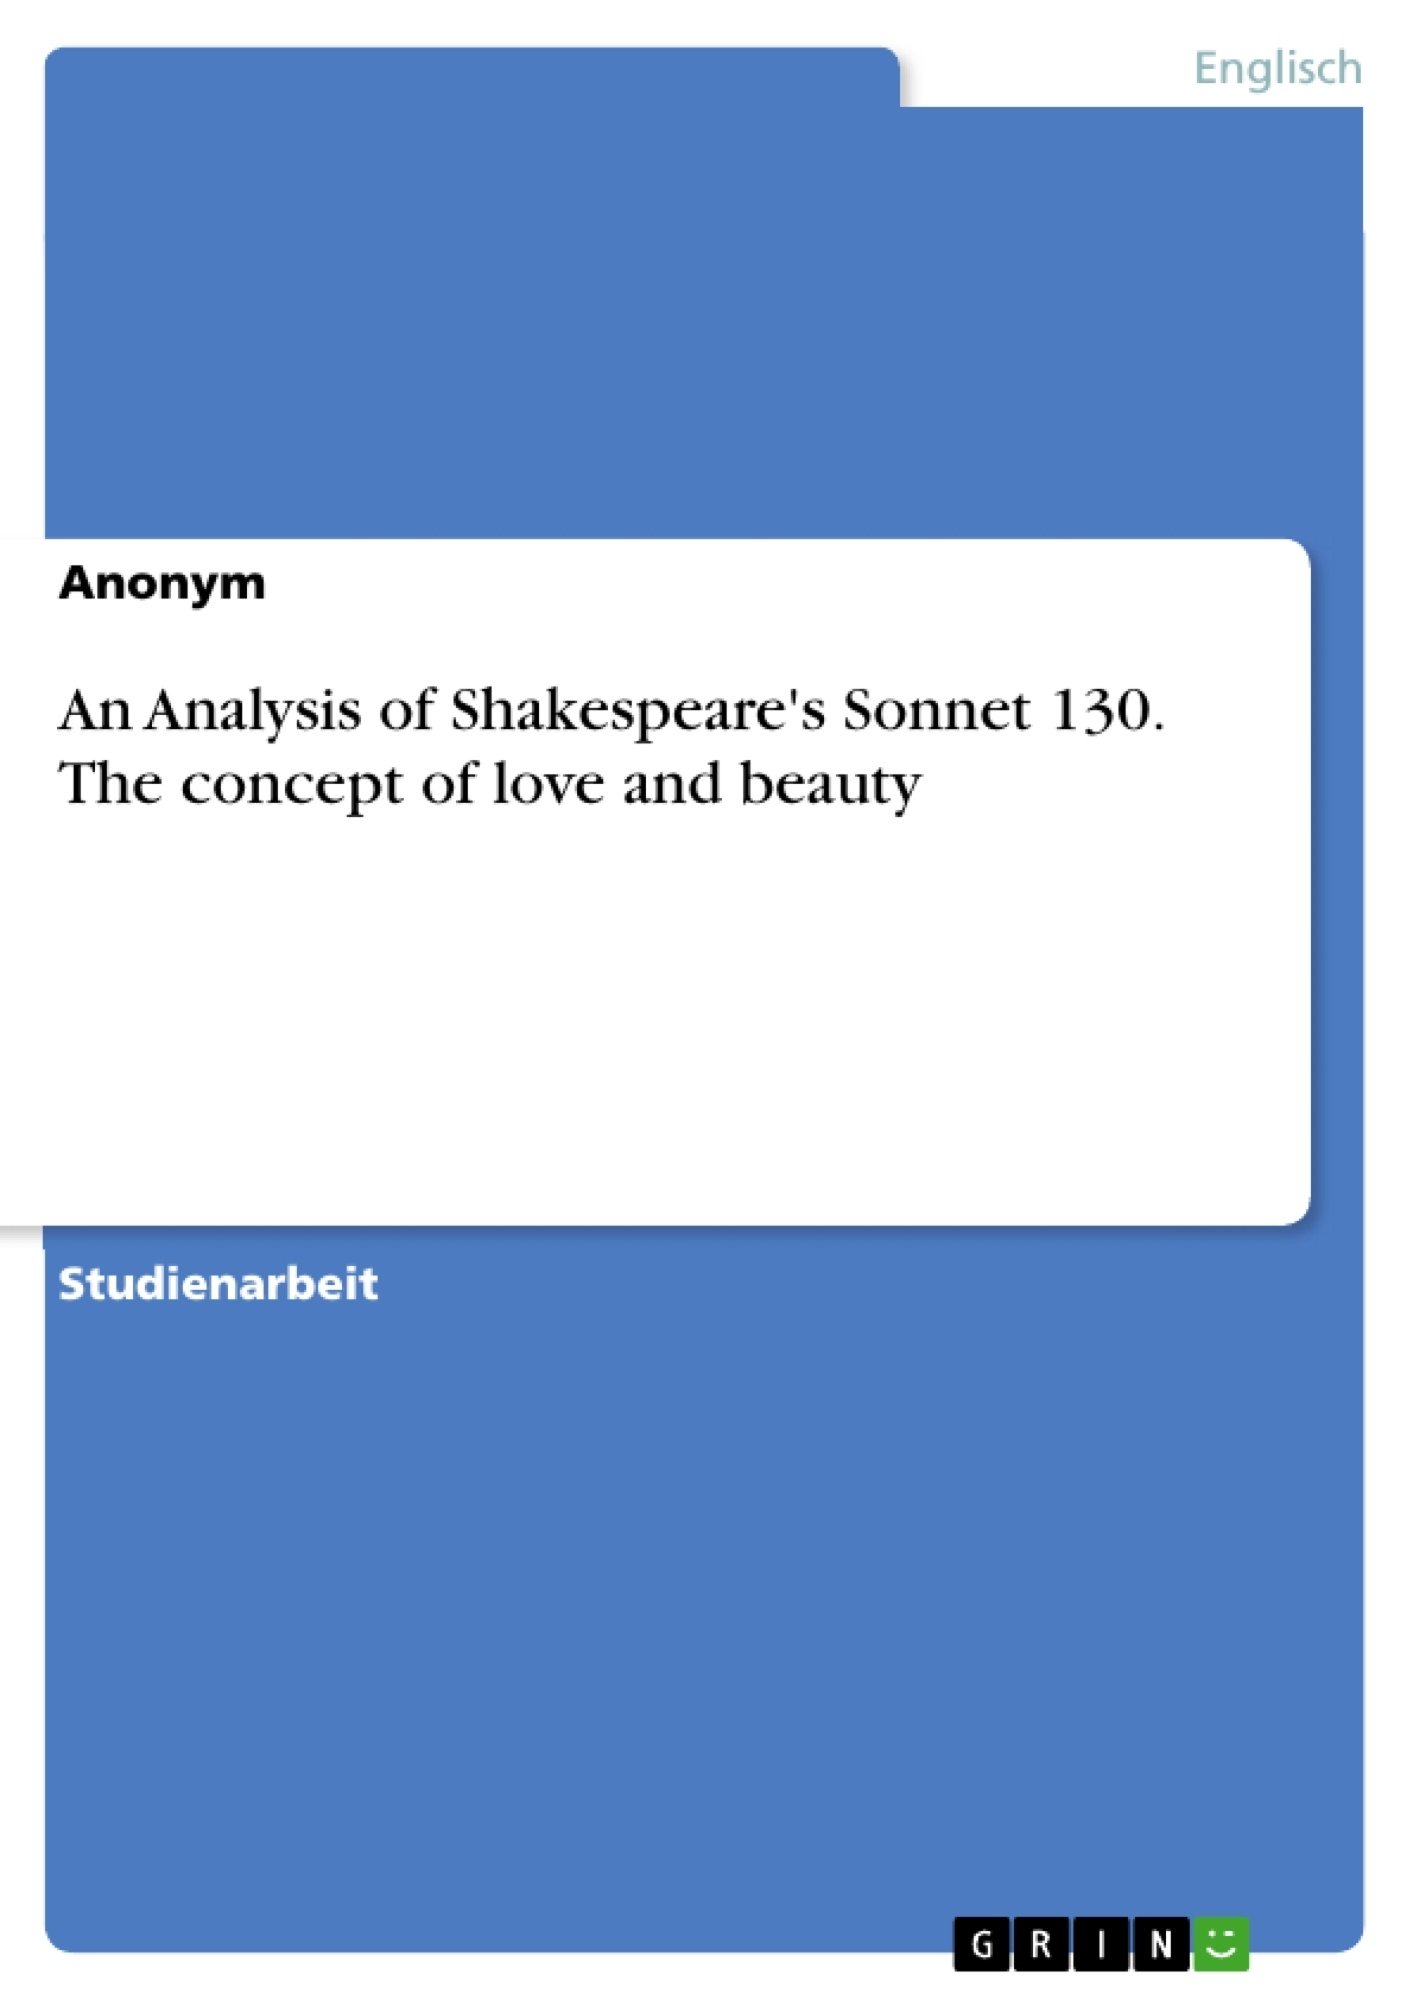 Titel: An Analysis of Shakespeare's Sonnet 130. The concept of love and beauty